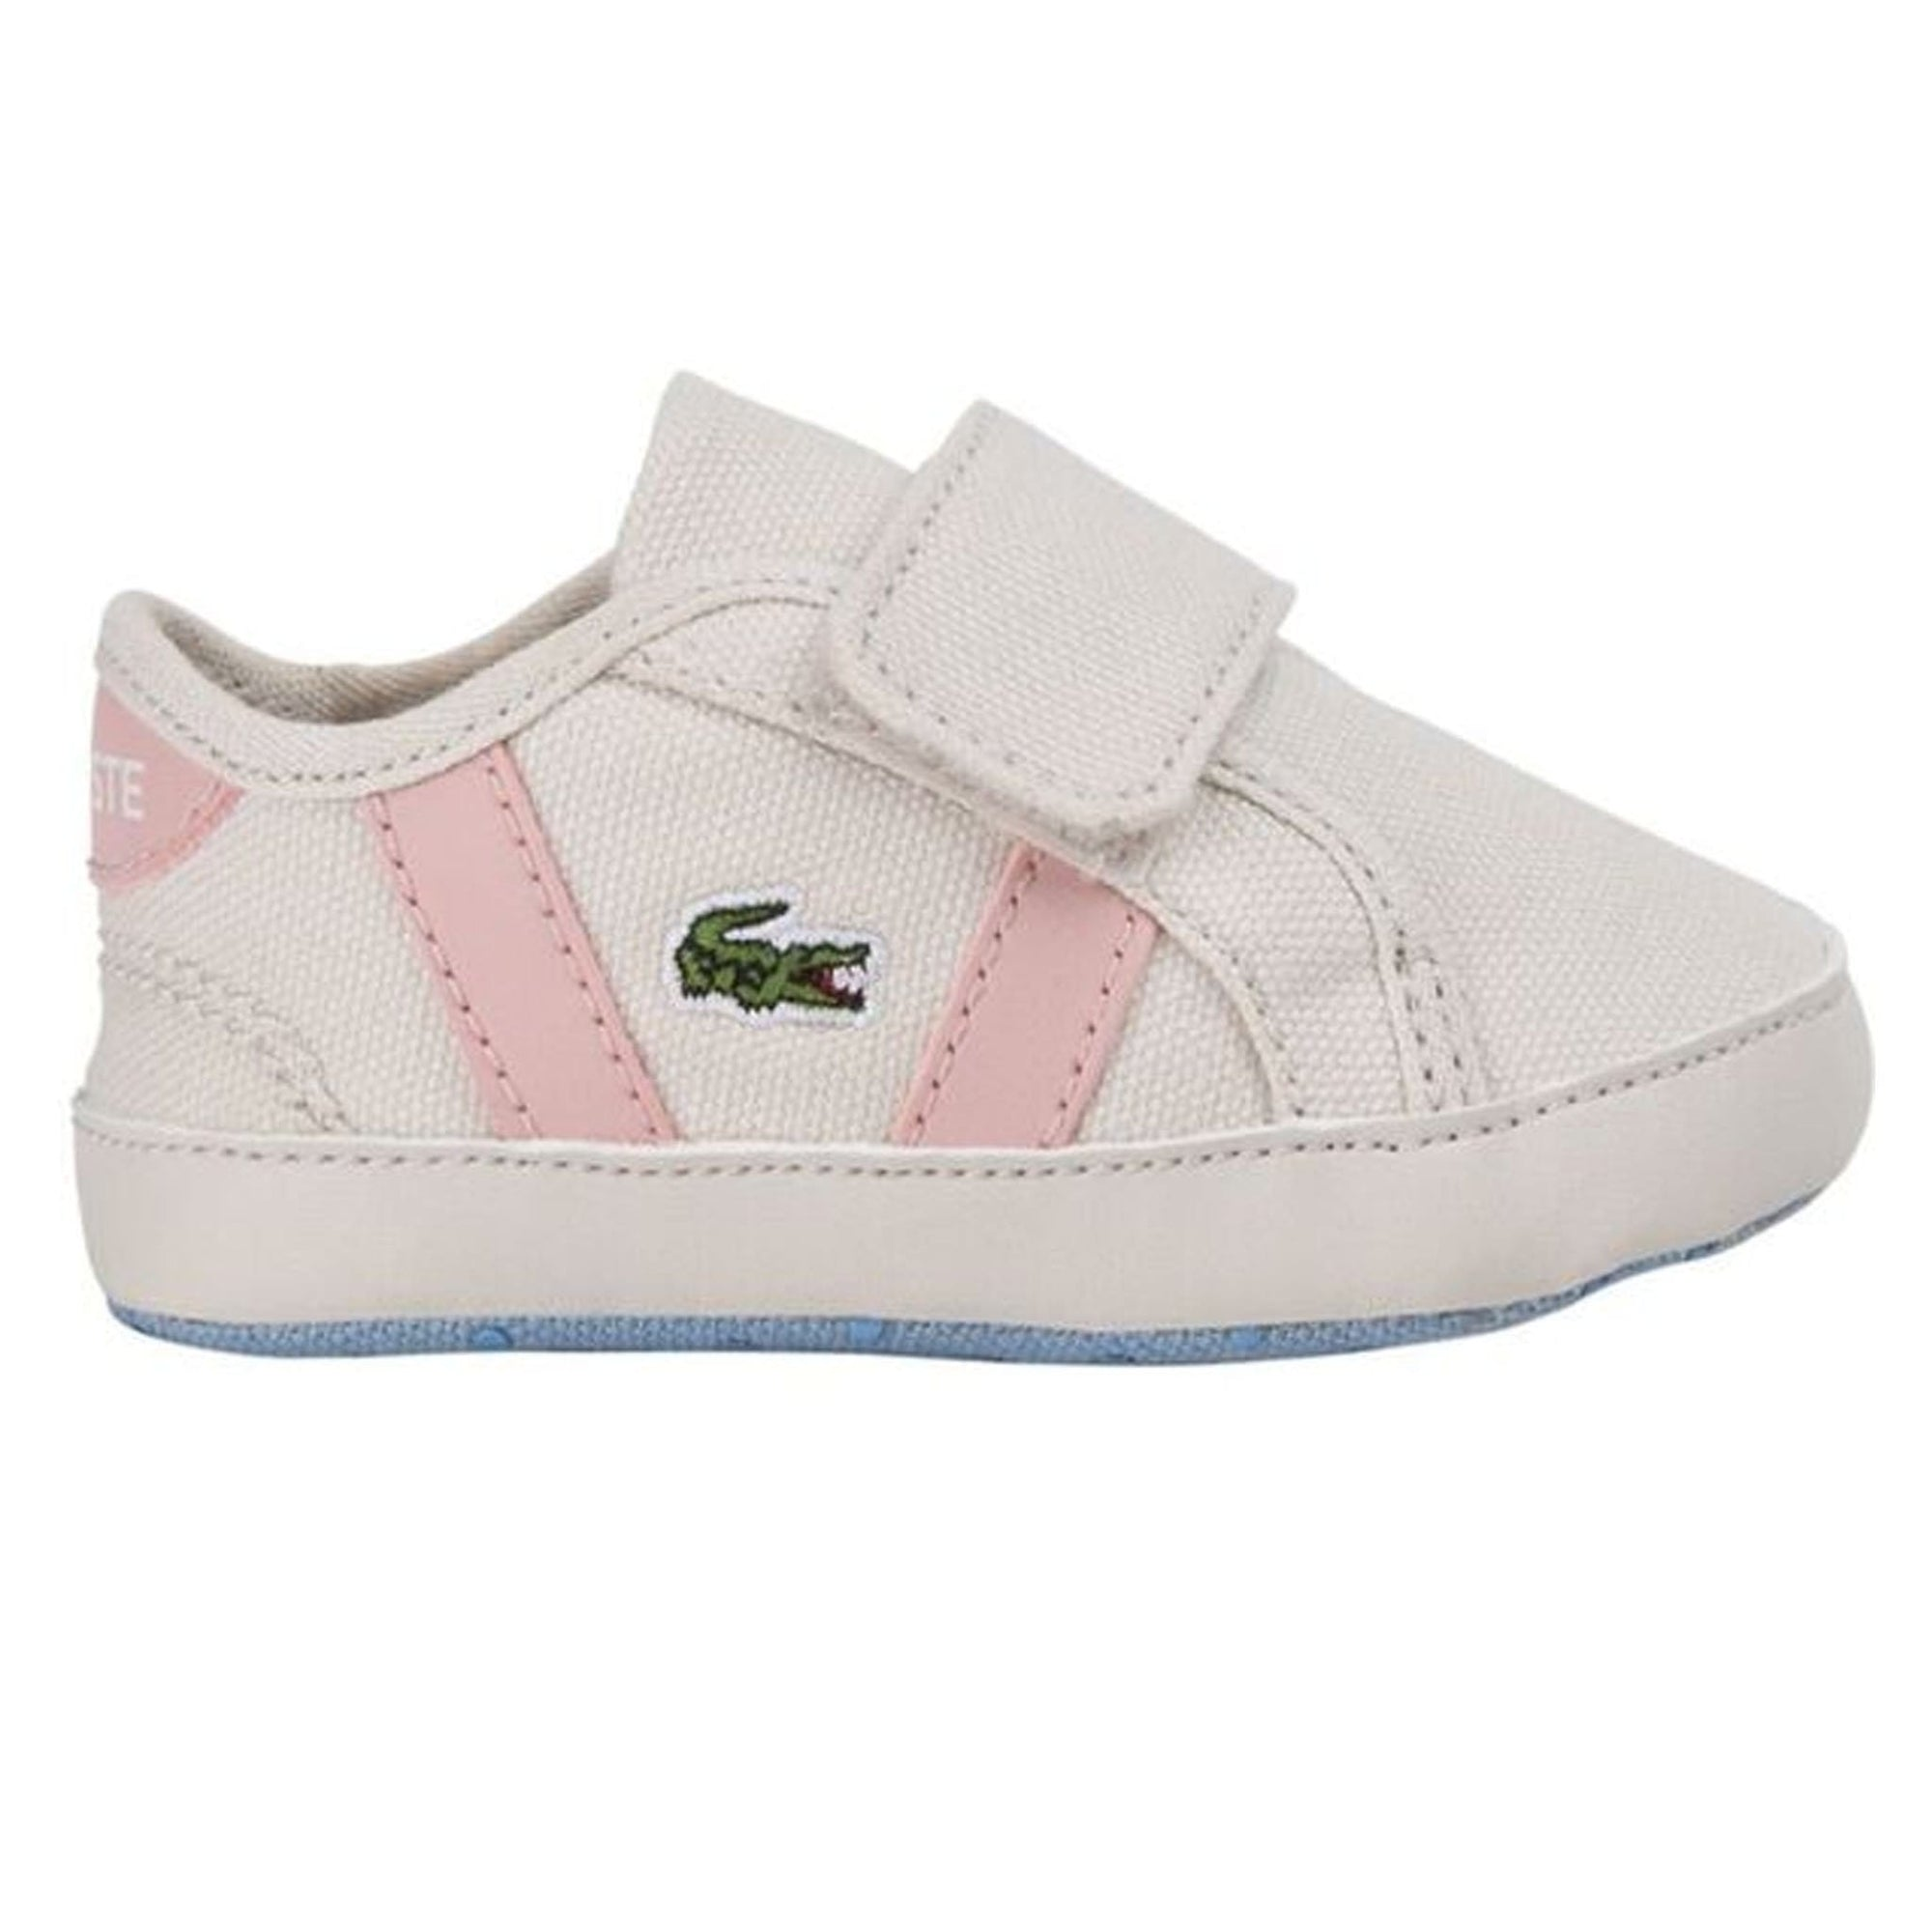 Lacsote Infants' Pink Sideline Crib Canvas Trainers